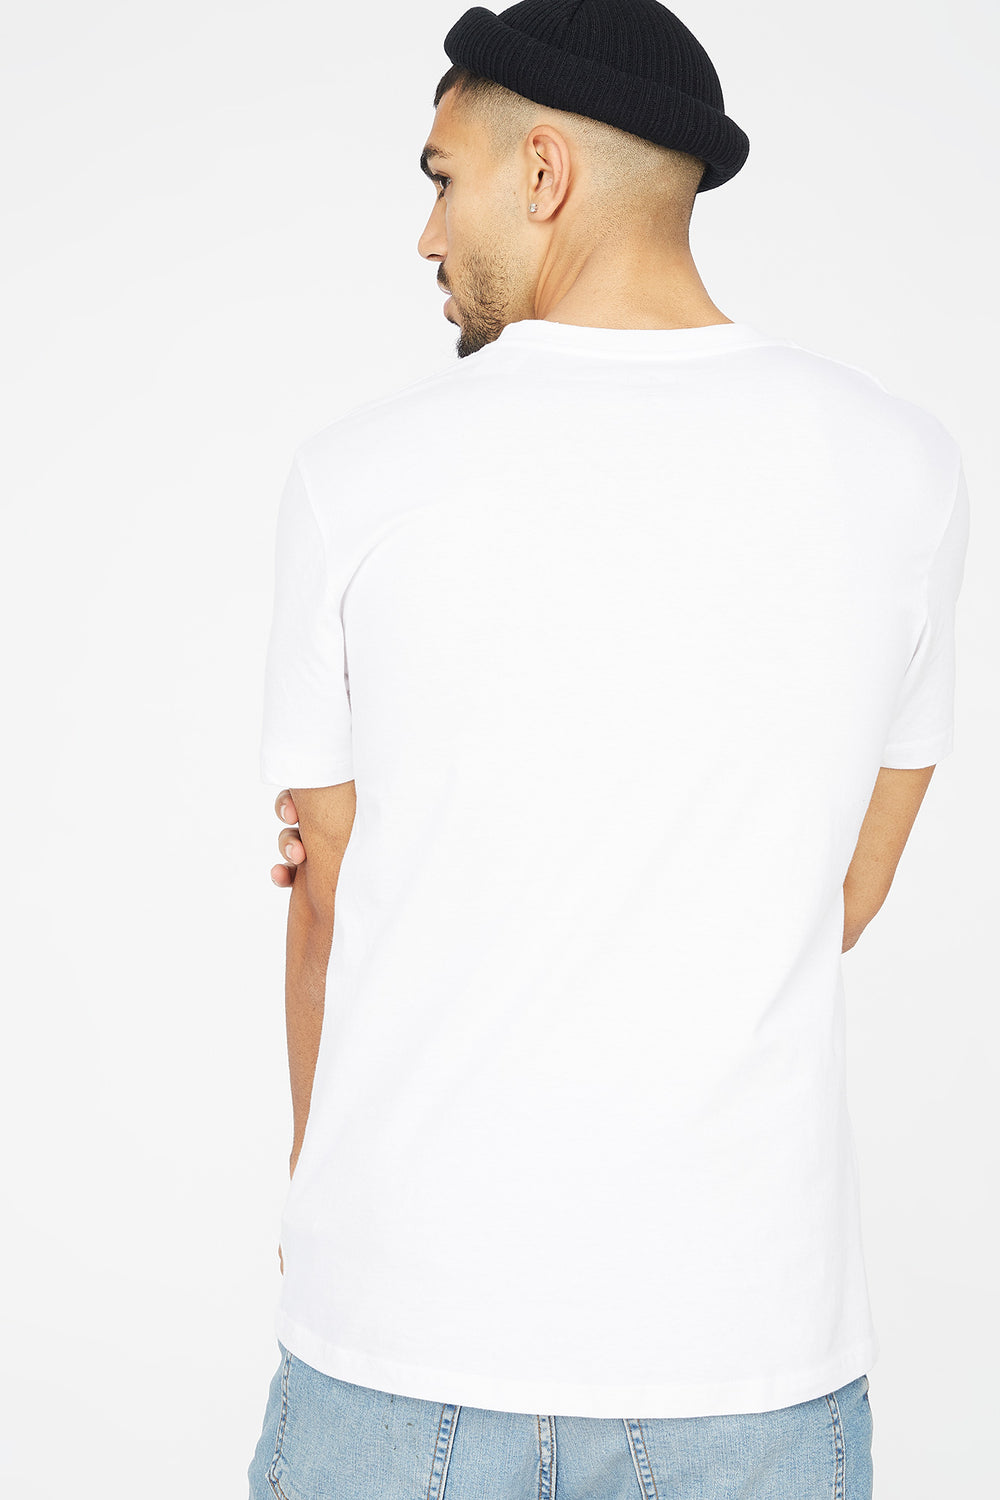 Urban Downtown New York Graphic T-Shirt White